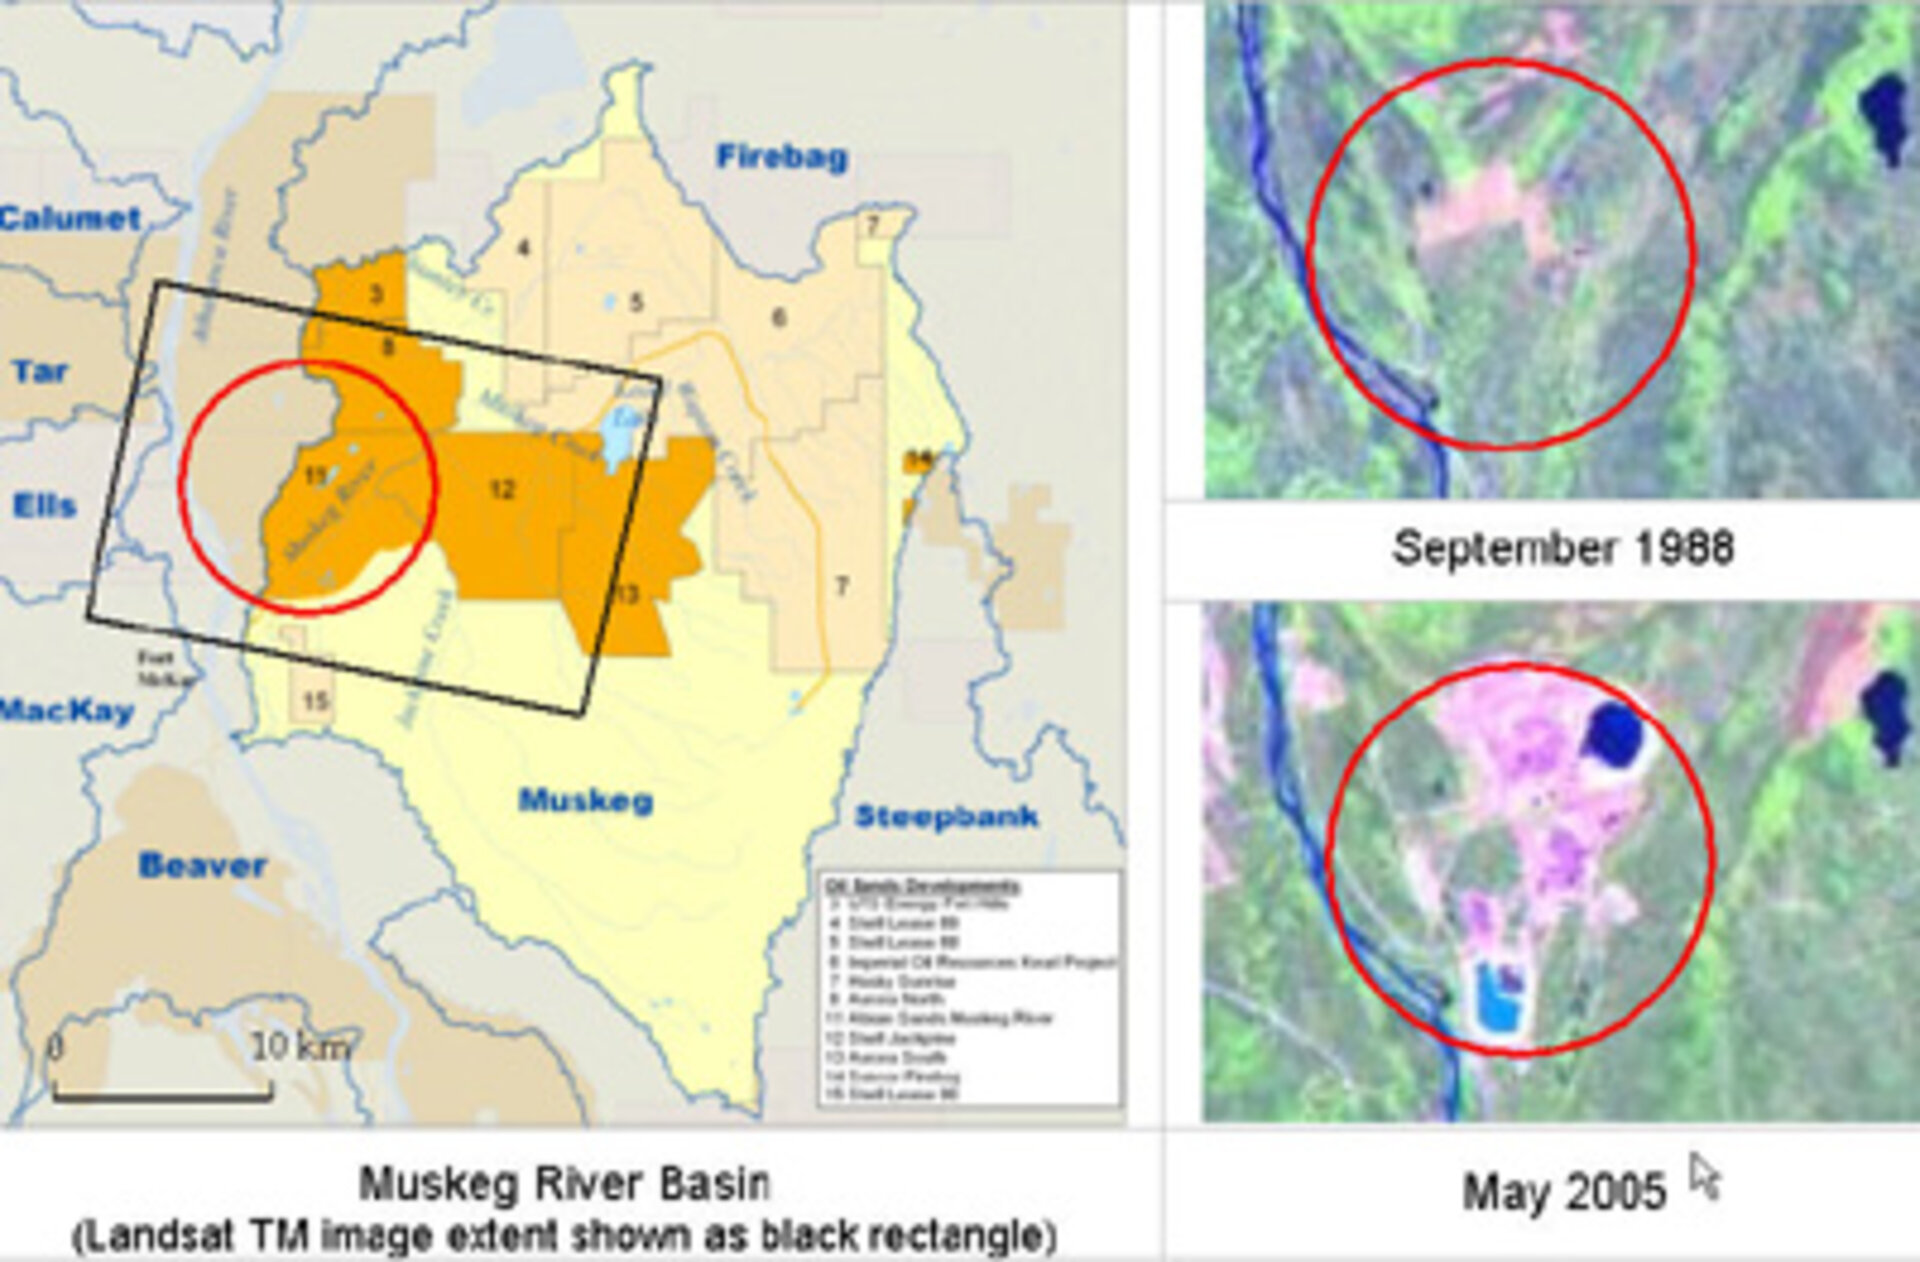 Satellite observations of the Muskeg River Basin